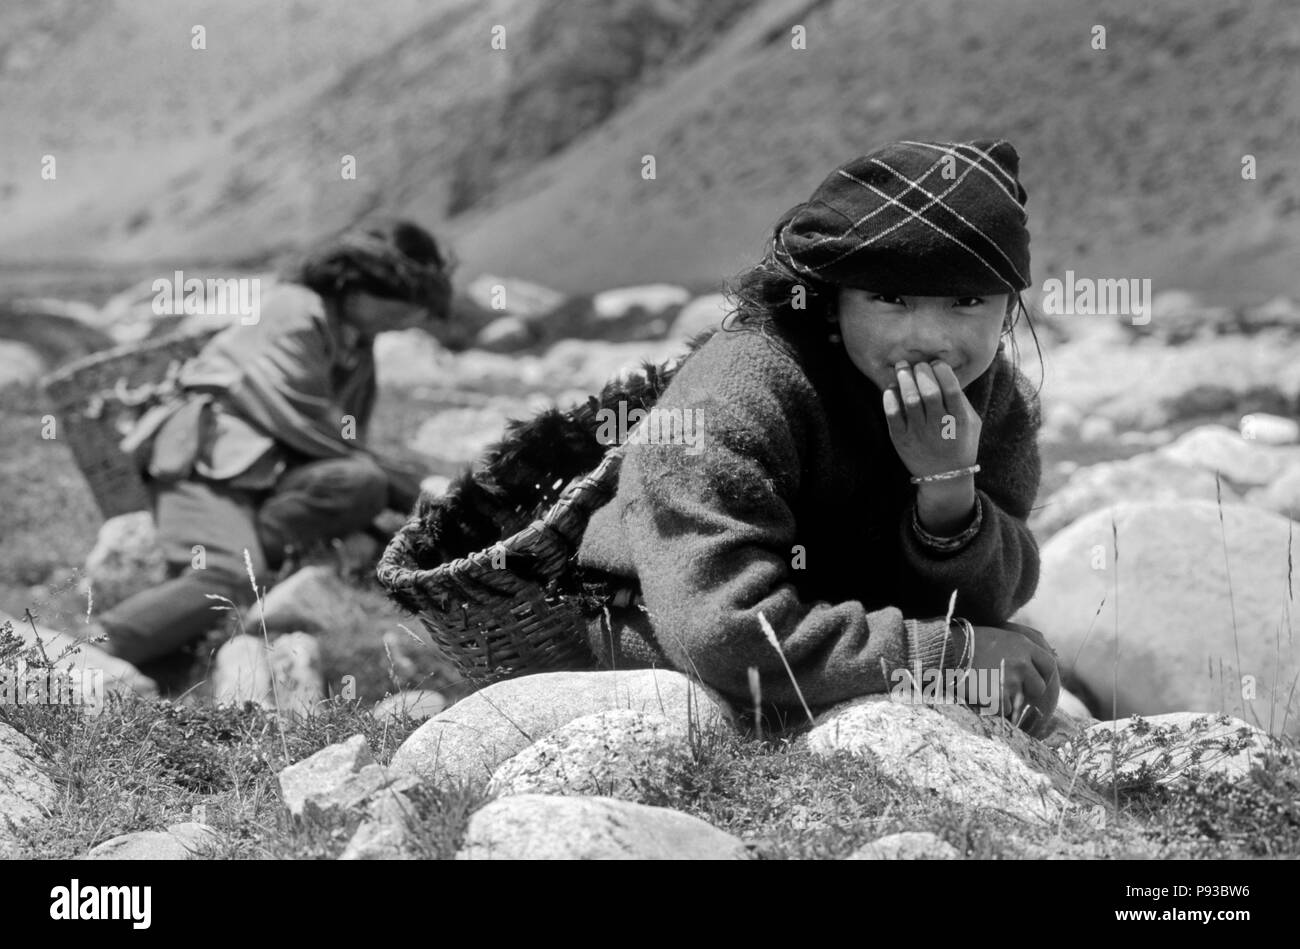 Young TIBETAN WOMEN gather YAK DUNG which they use for fuel on the TIBETAN PLATEAU near NYALAM, TIBET - Stock Image